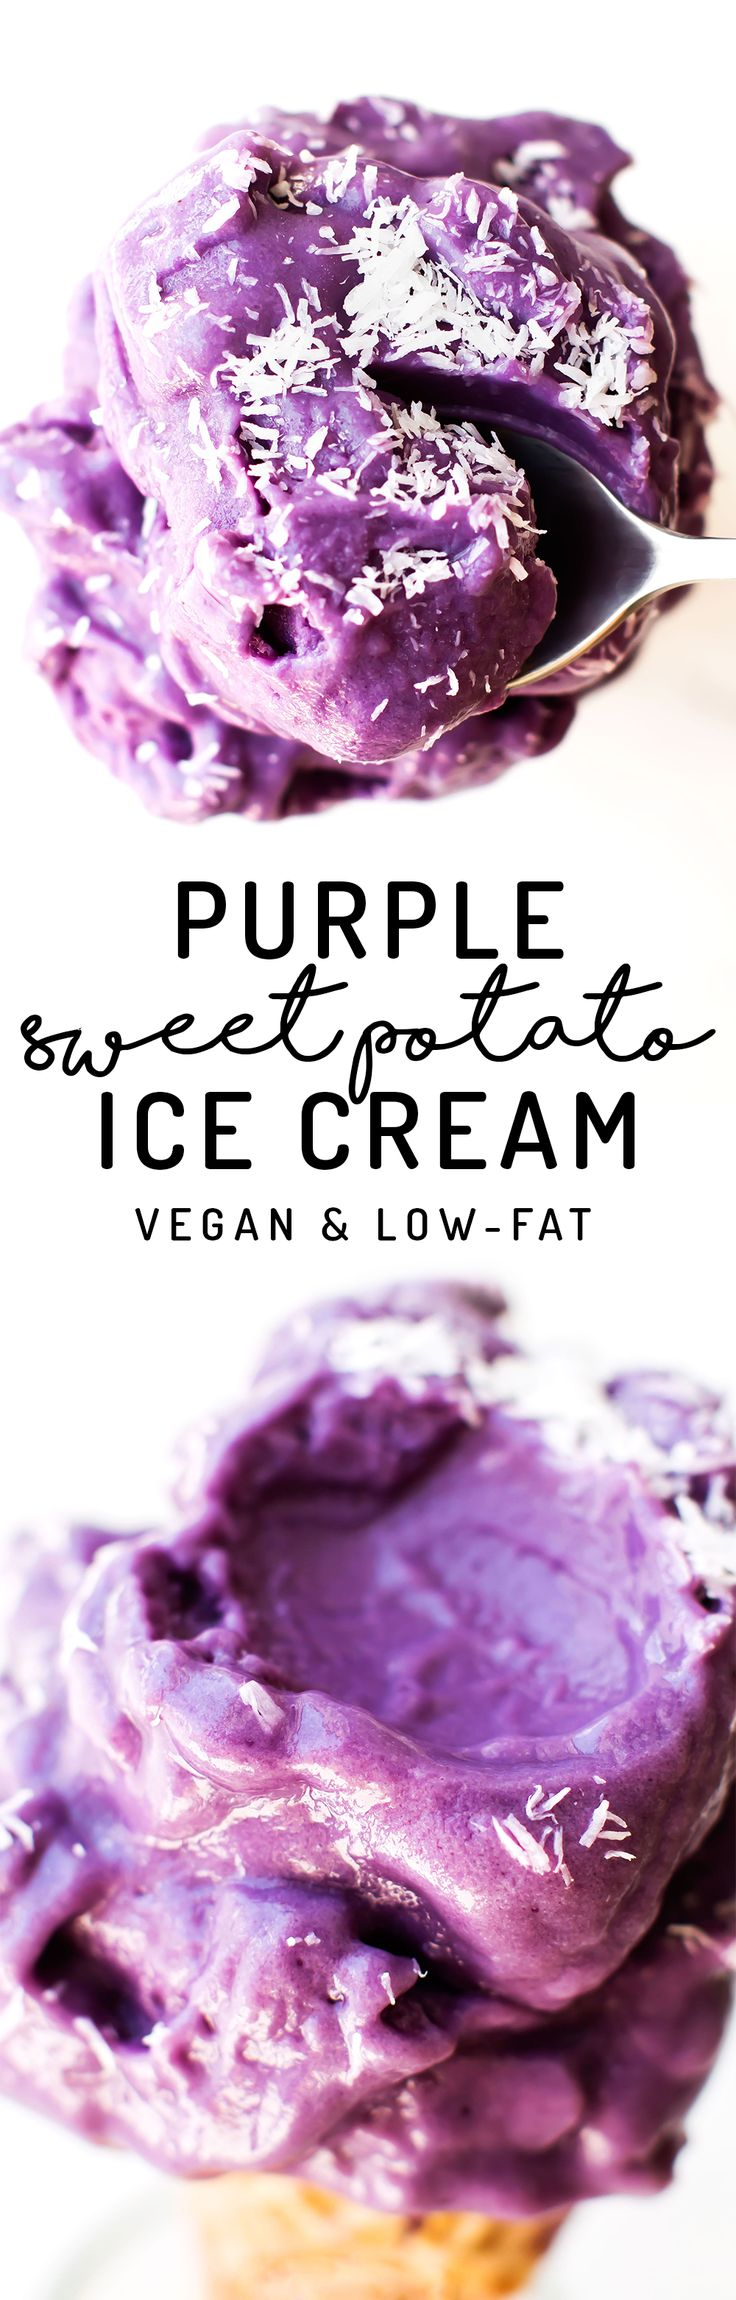 This Purple Sweet Potato Ice Cream is a dazzlingly delicious vegan and paleo dessert made in the blender with almond milk so it's easy, low-fat, and healthy too!